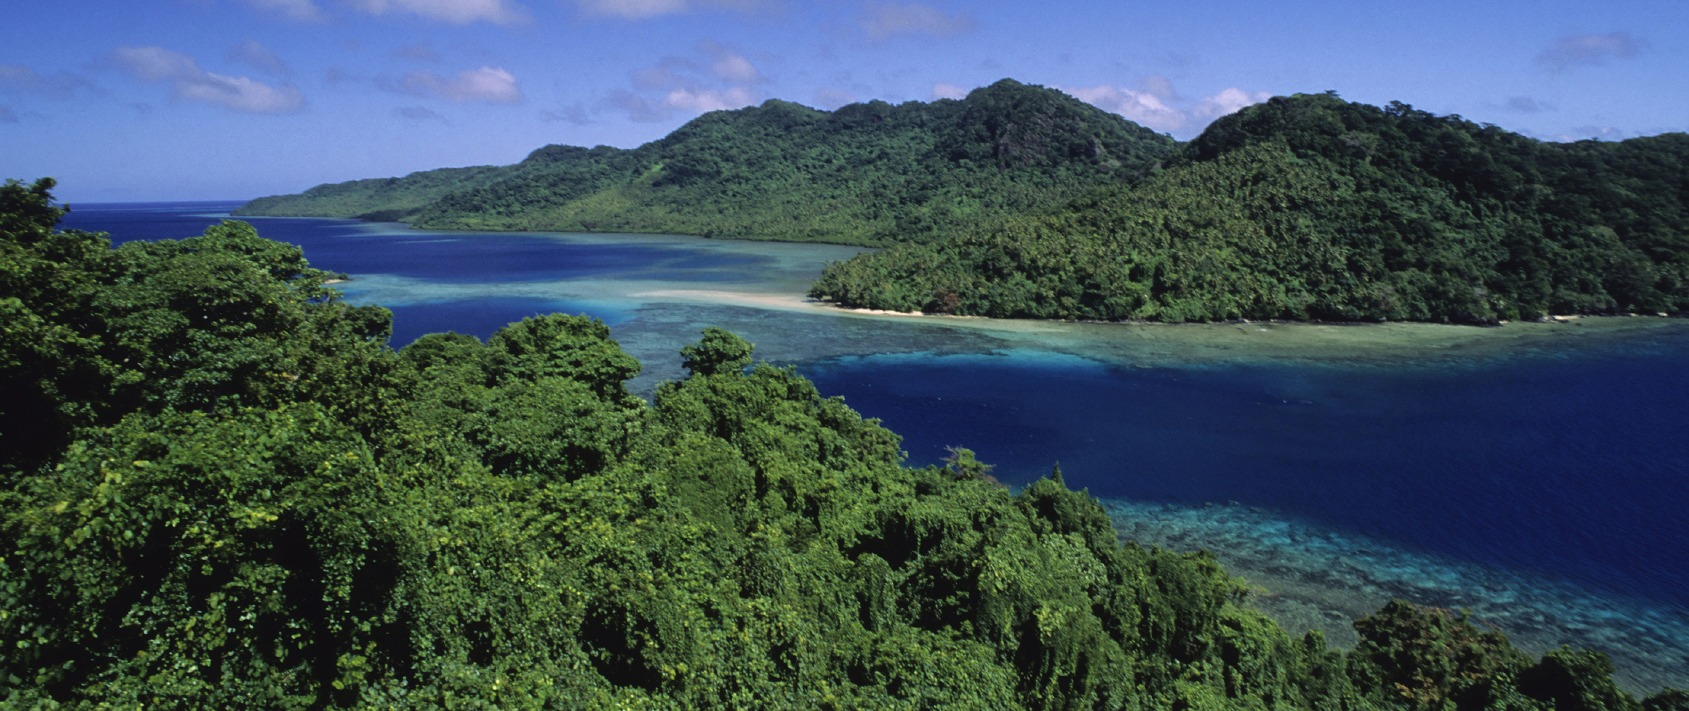 IGF 2014: Small Island States Bring Big Issues to the Table